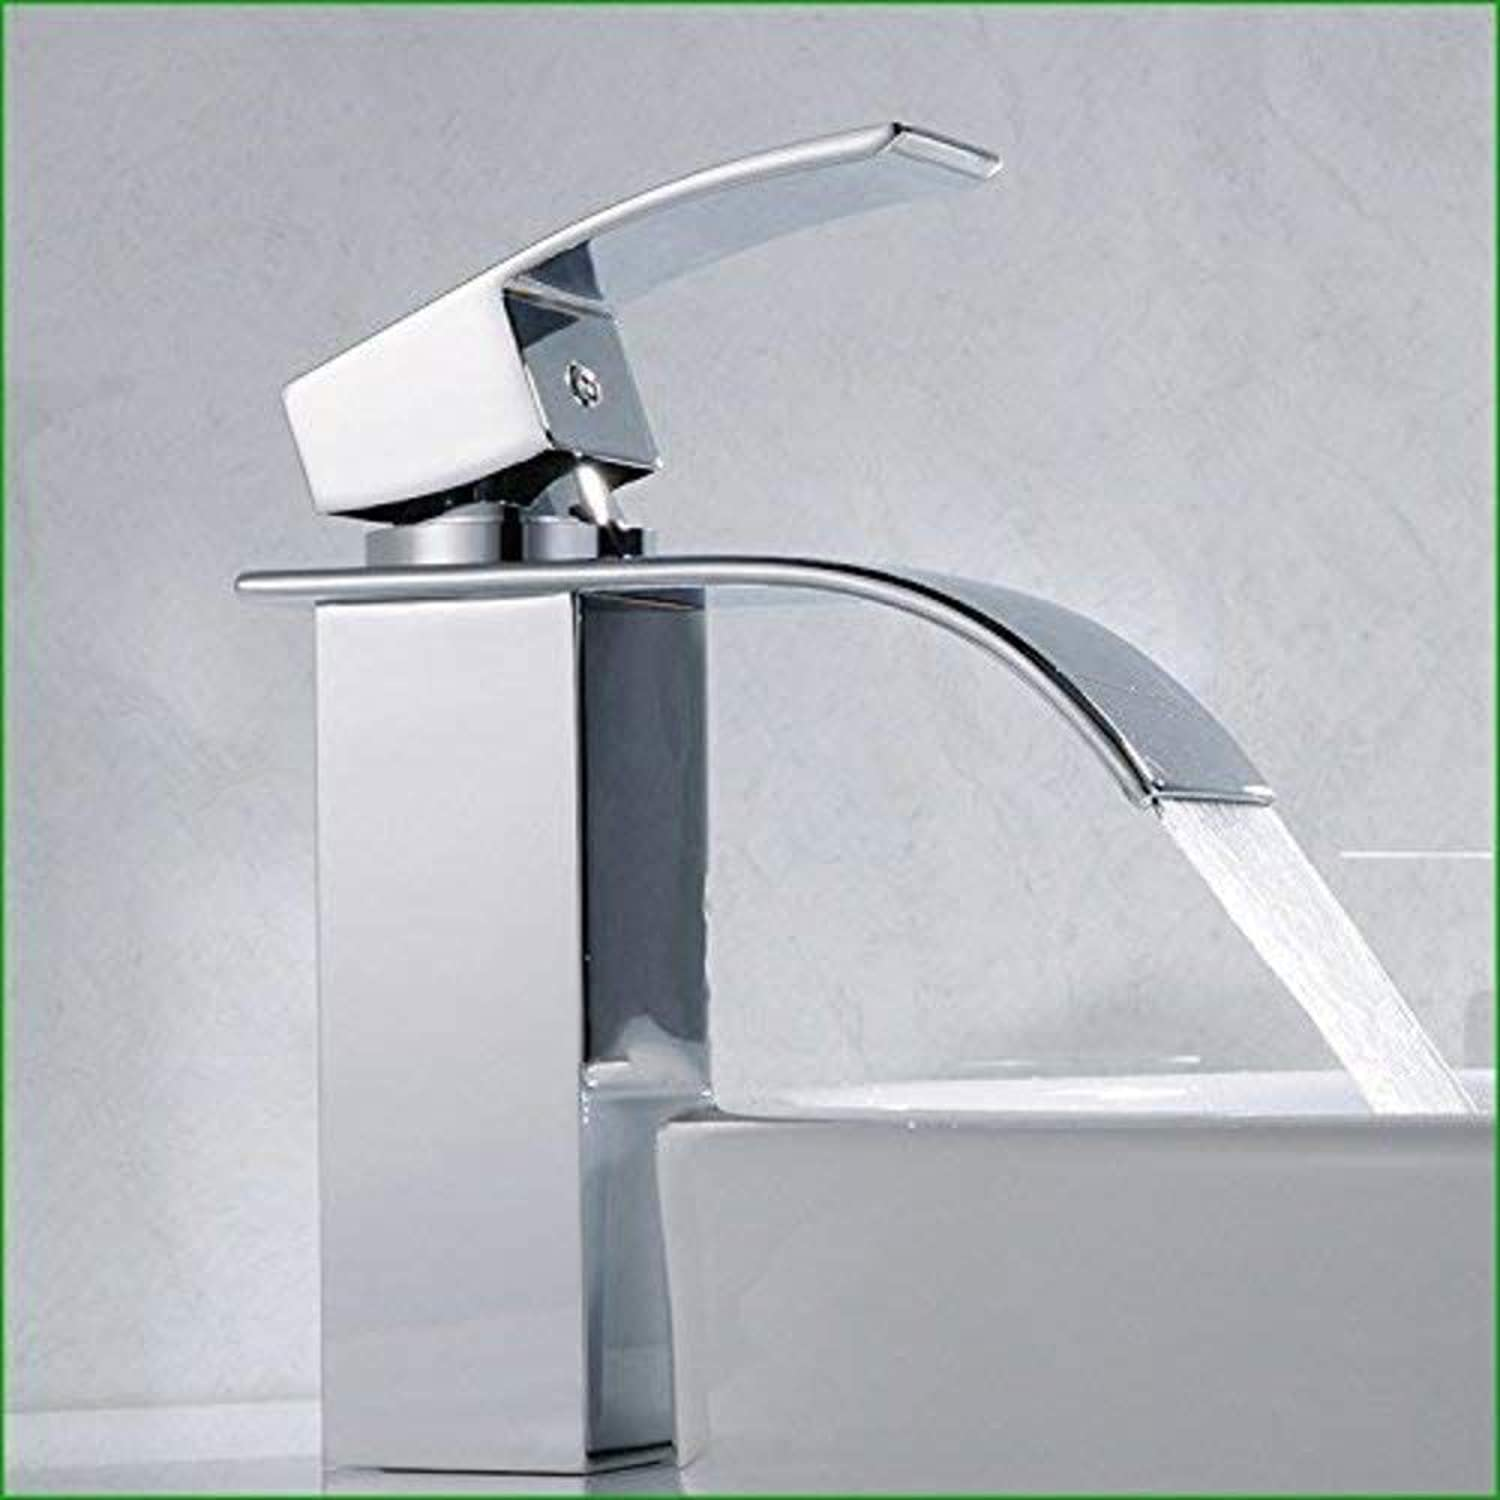 360° redating Faucet Retro Faucet All Copper Hot and Cold Water Faucet Basin Faucet Water Outlet Pipe Water Outlet